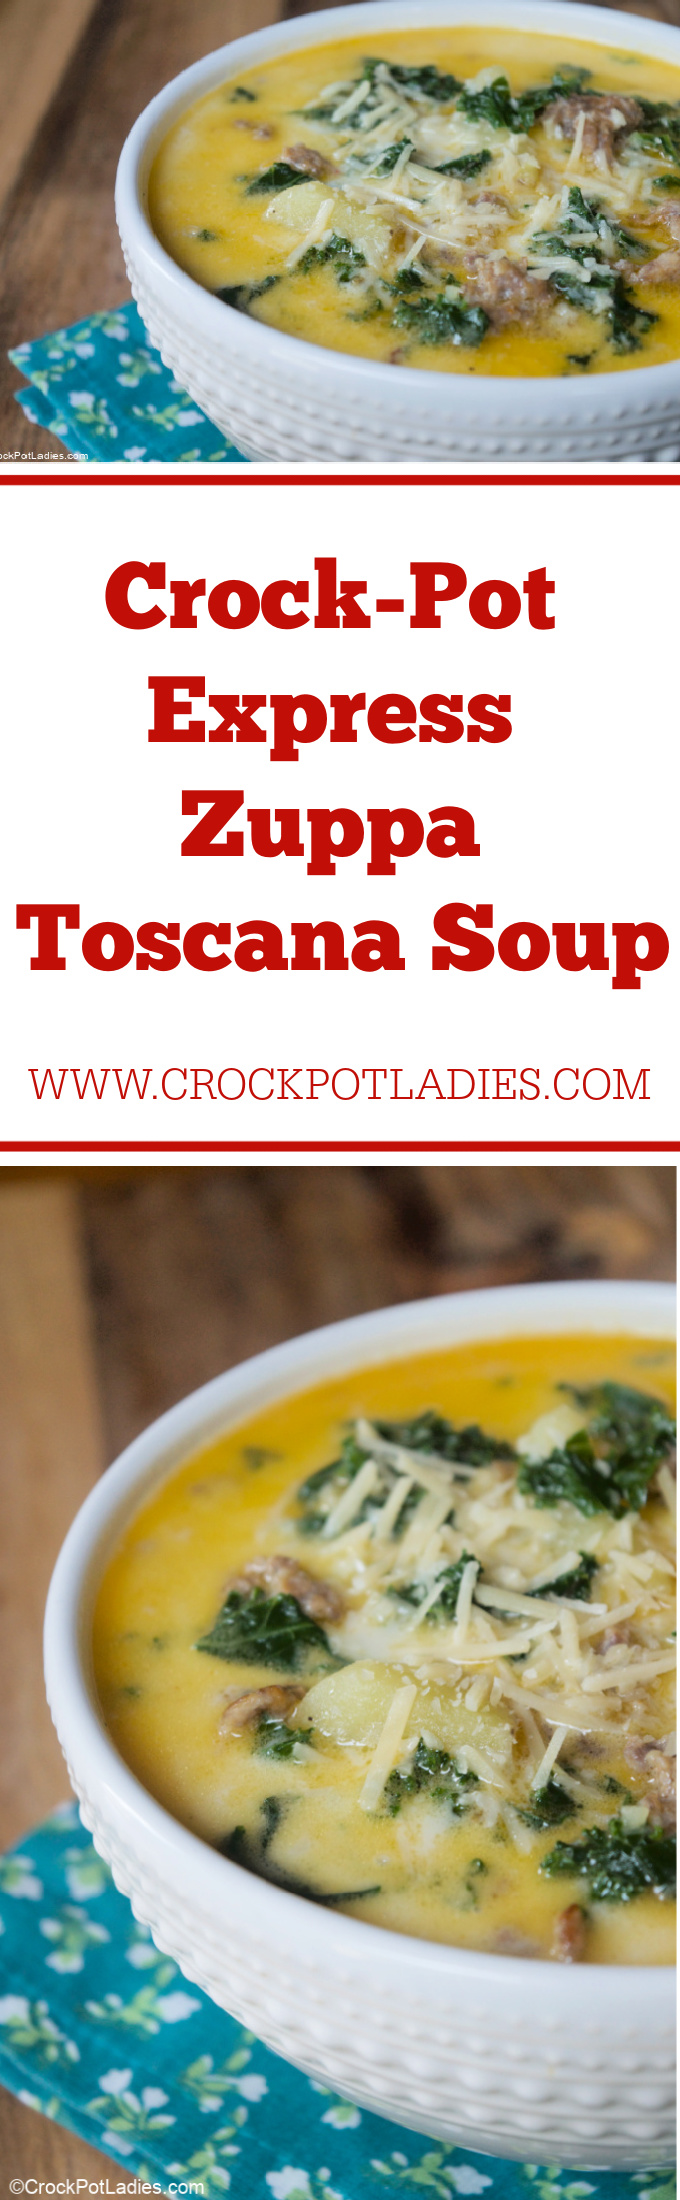 Crock-Pot Express Zuppa Toscana Soup